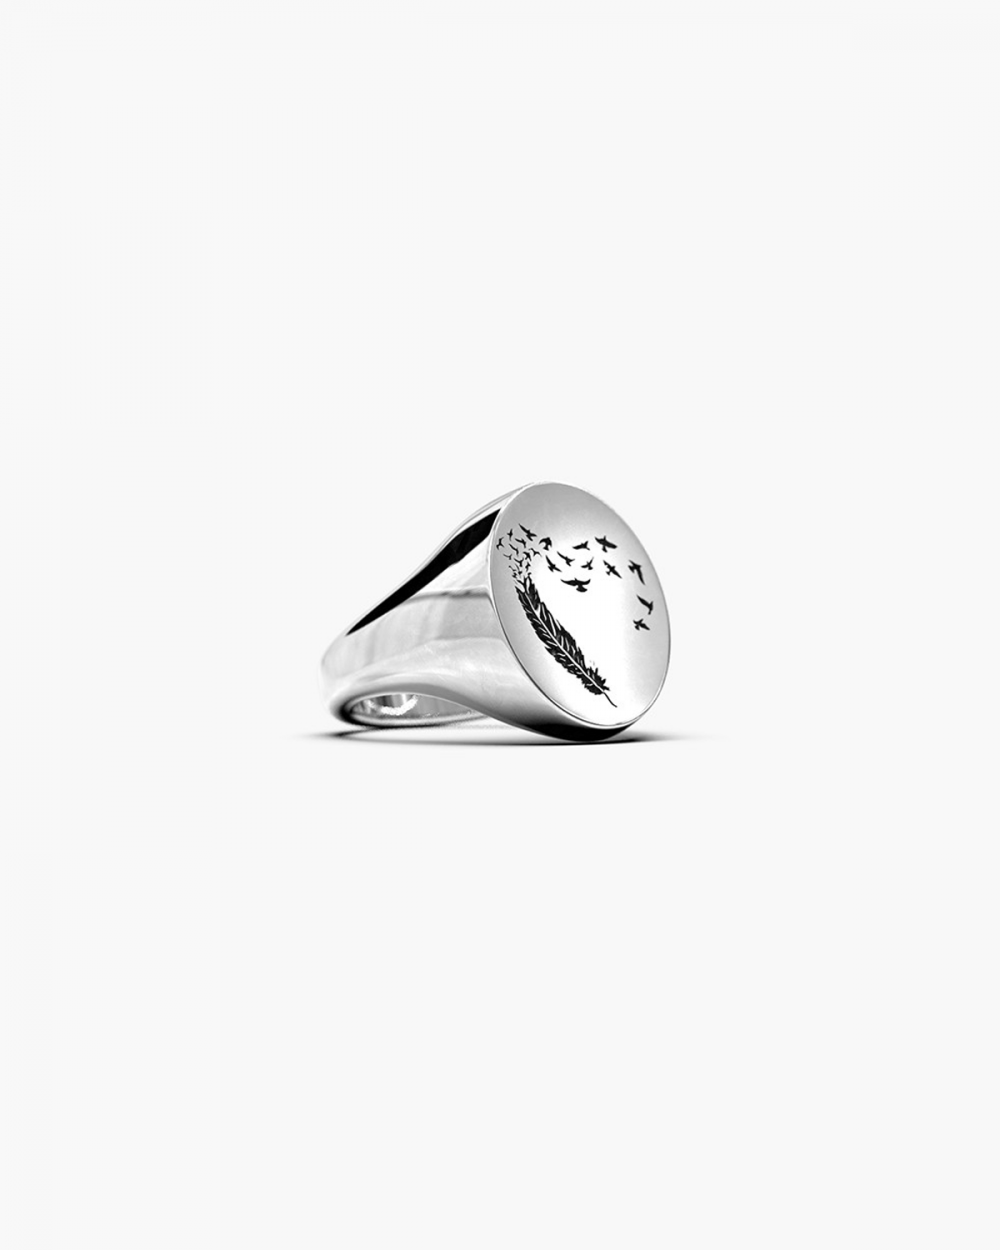 MYNOVE25 BIG OVAL SIGNET RING NOVE25